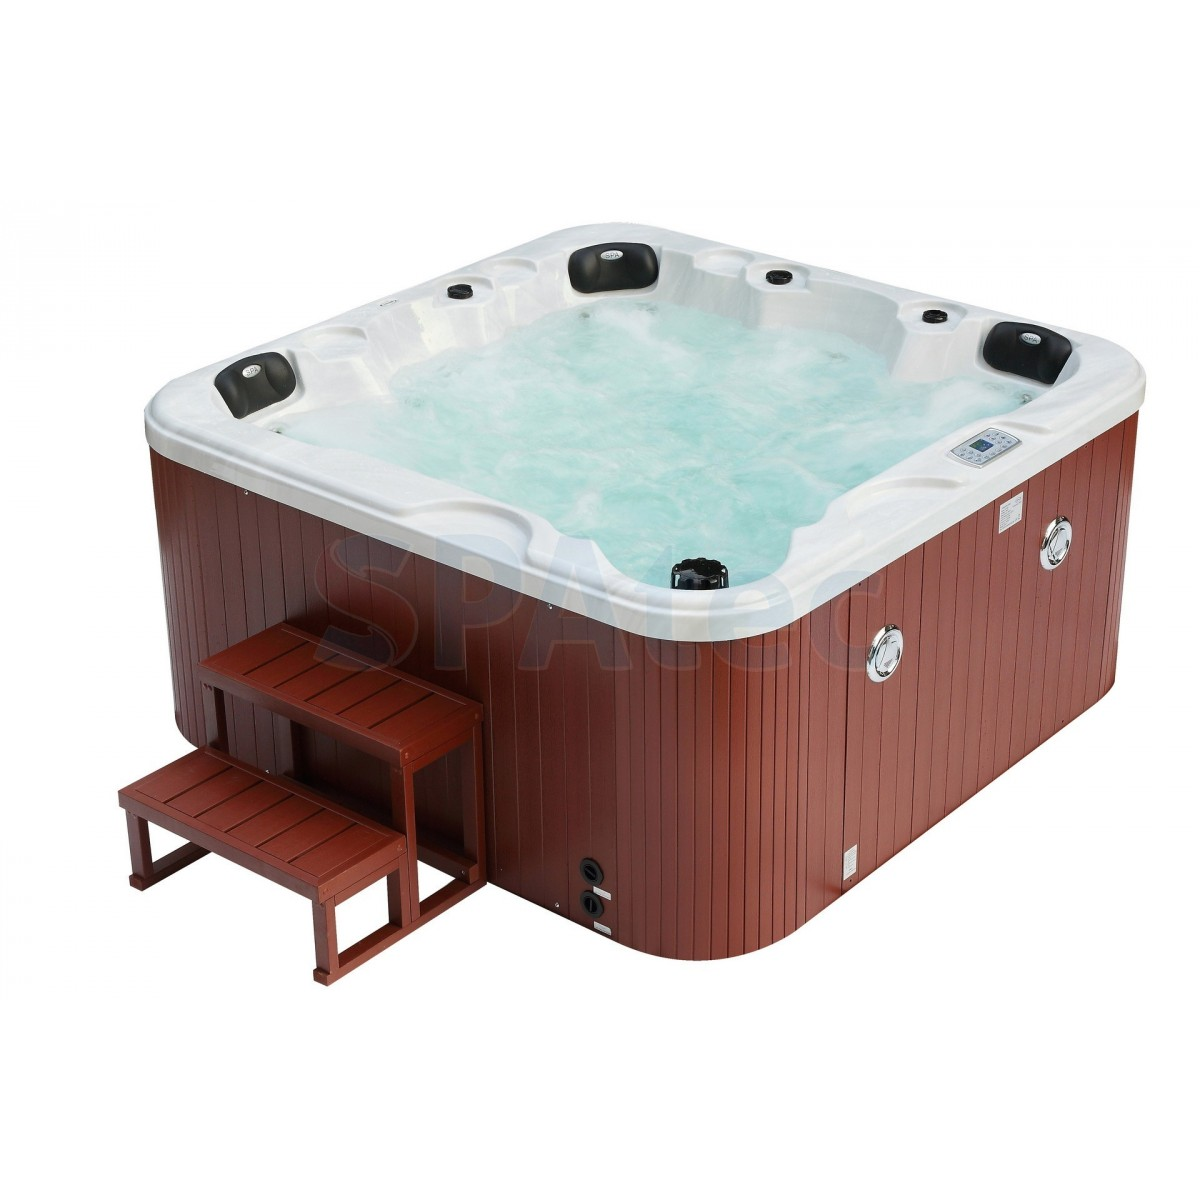 promo jacuzzi exterieur interesting spa gonflable intex pure spa octogonale places assises with. Black Bedroom Furniture Sets. Home Design Ideas